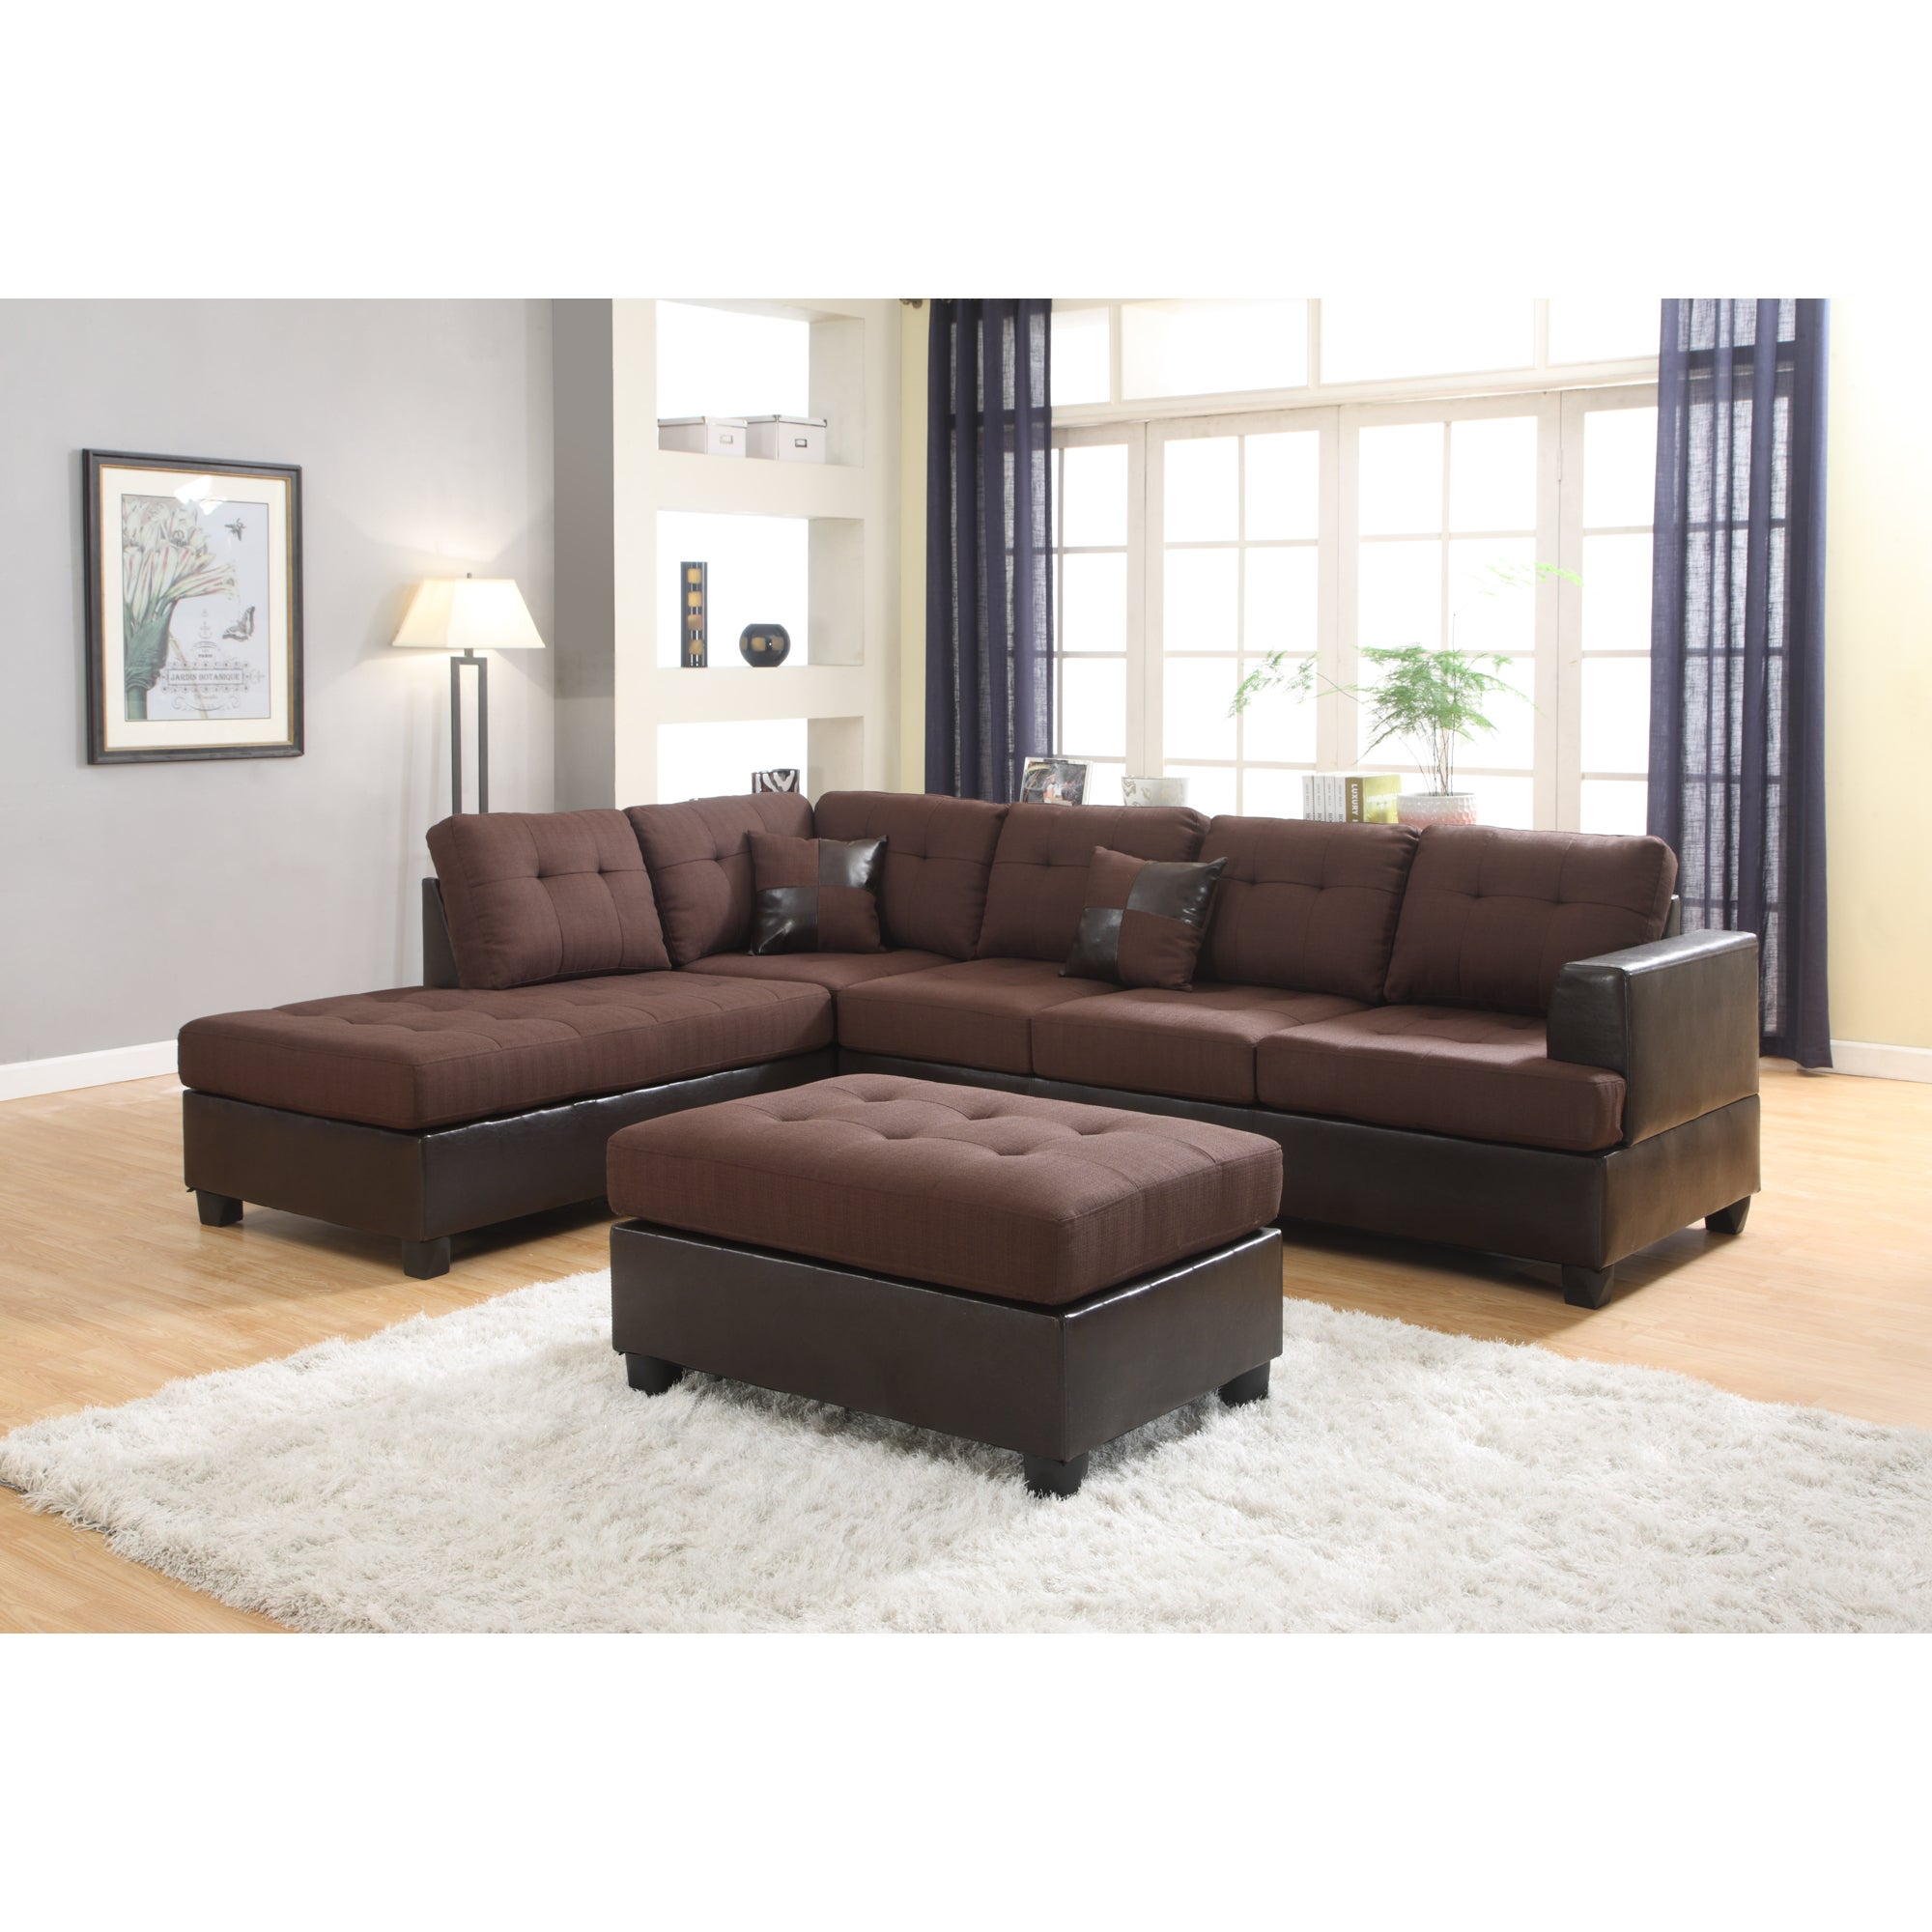 Ellus Fabric and Faux Leather 3 Piece Reversible Sectiona...